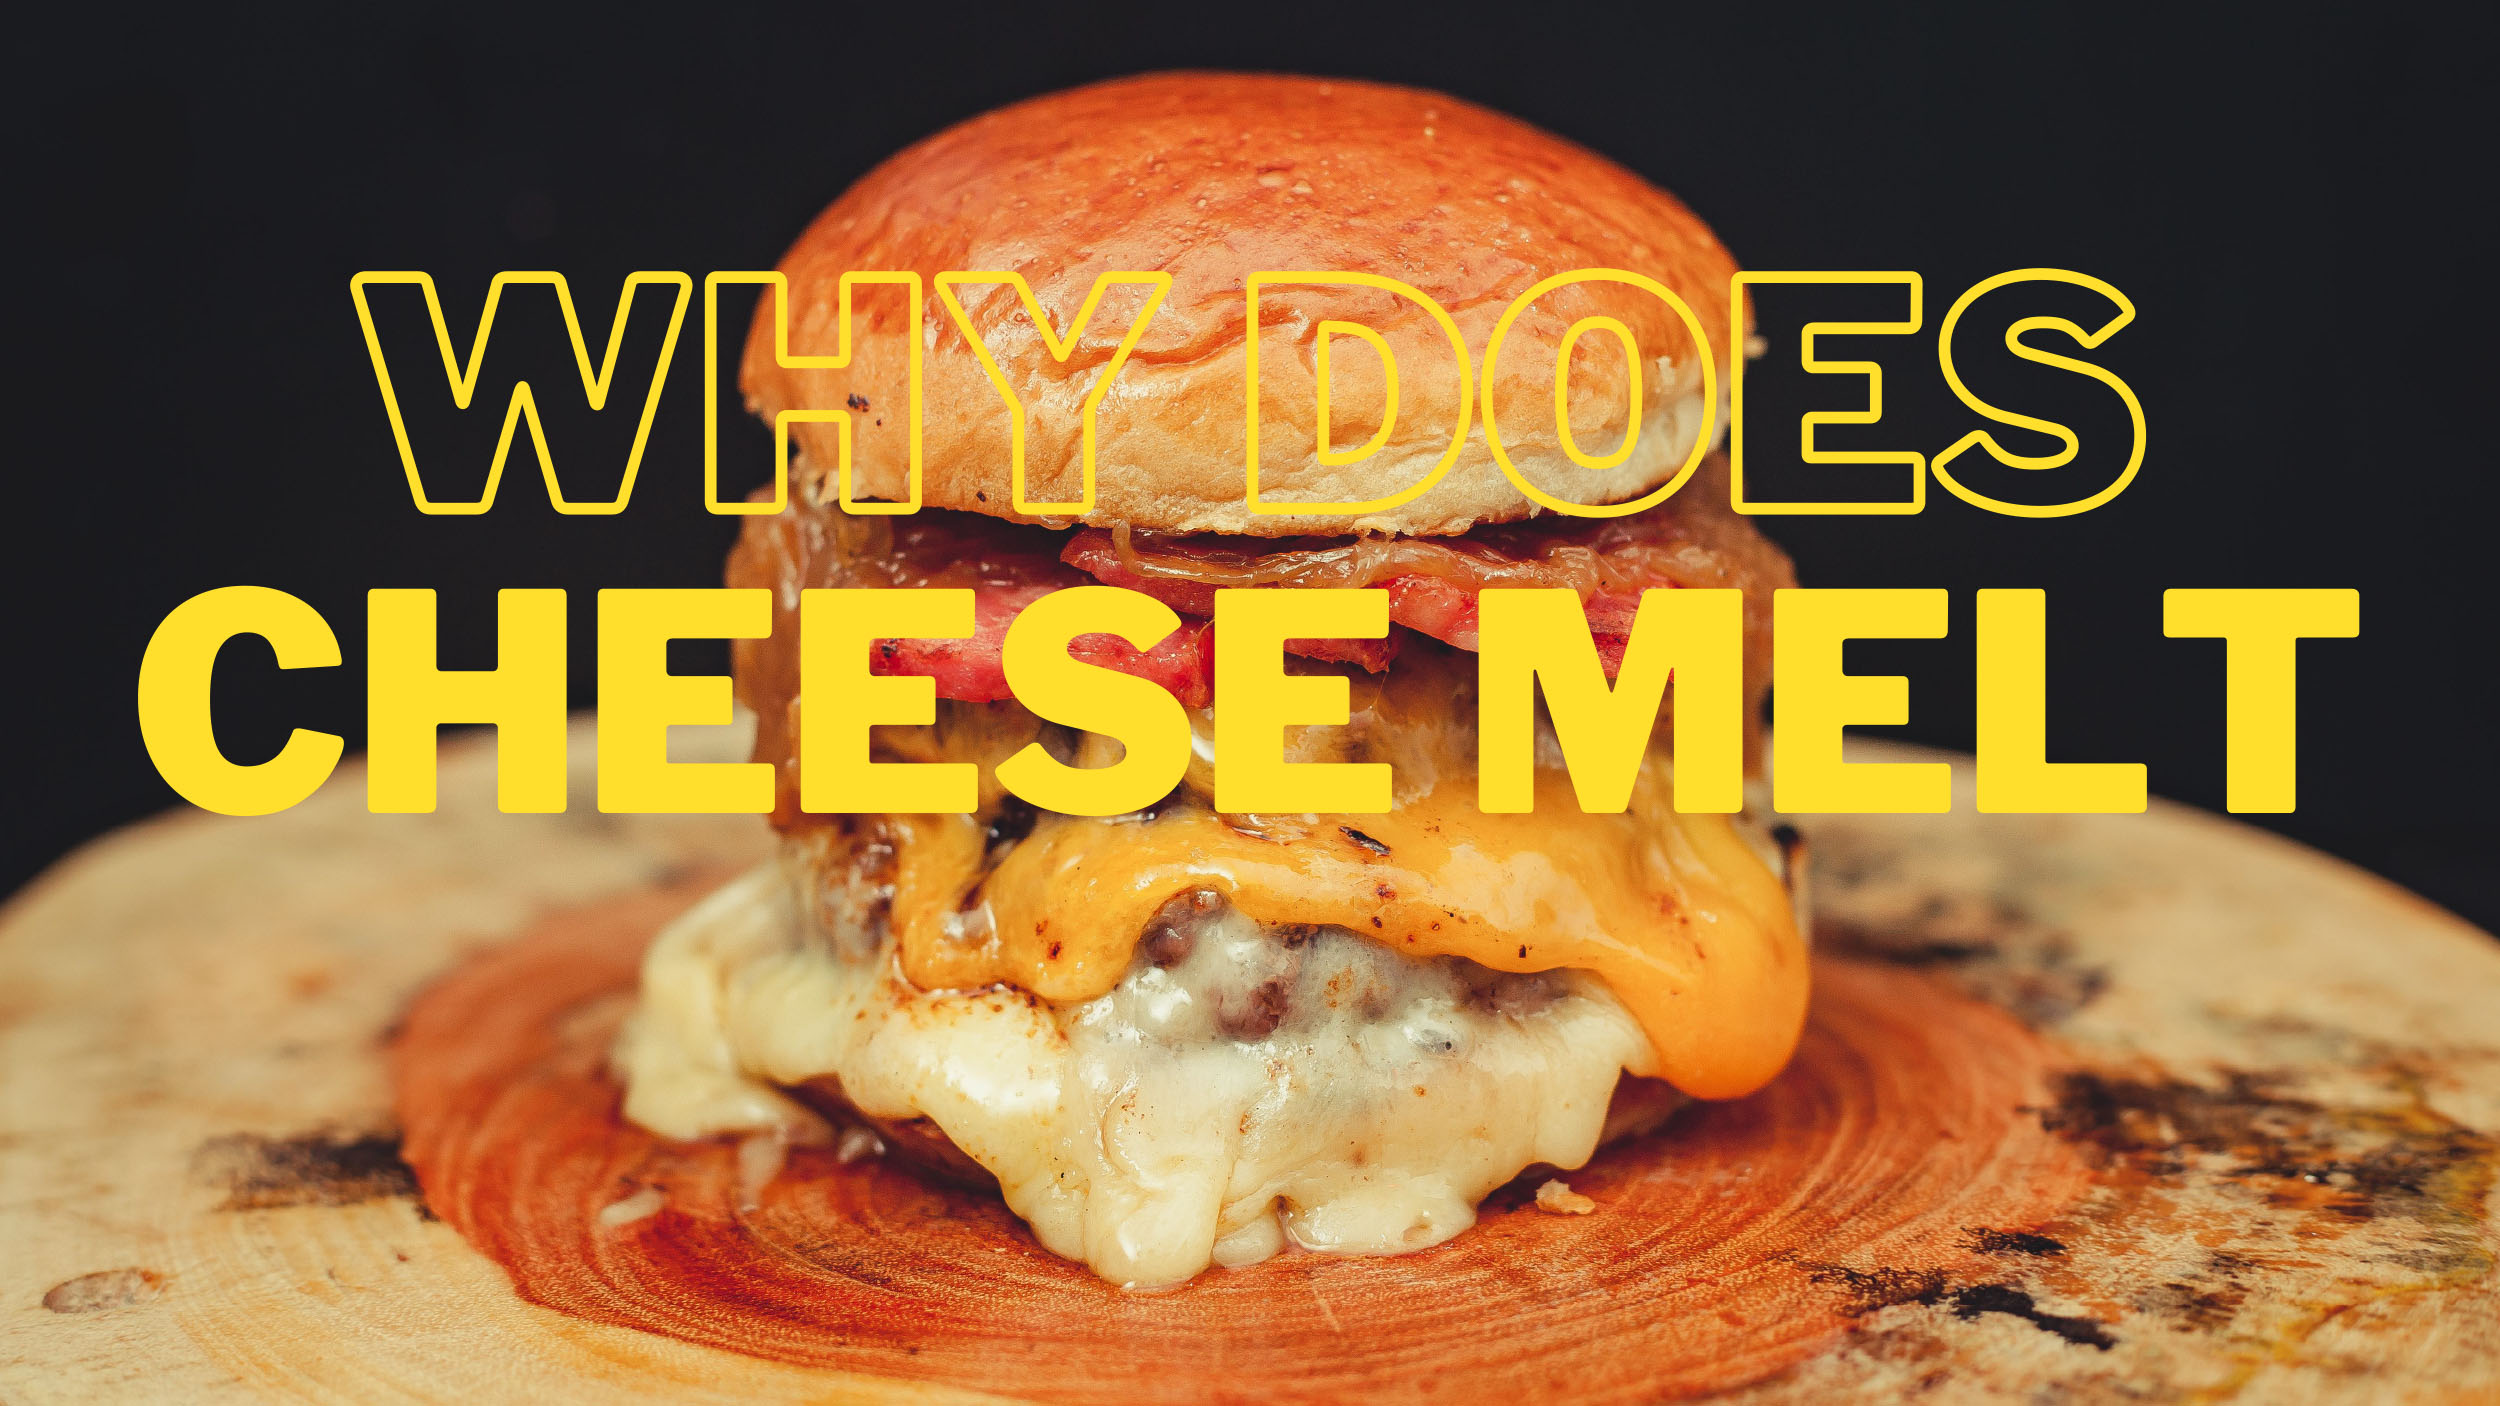 Why Does Cheese Melt